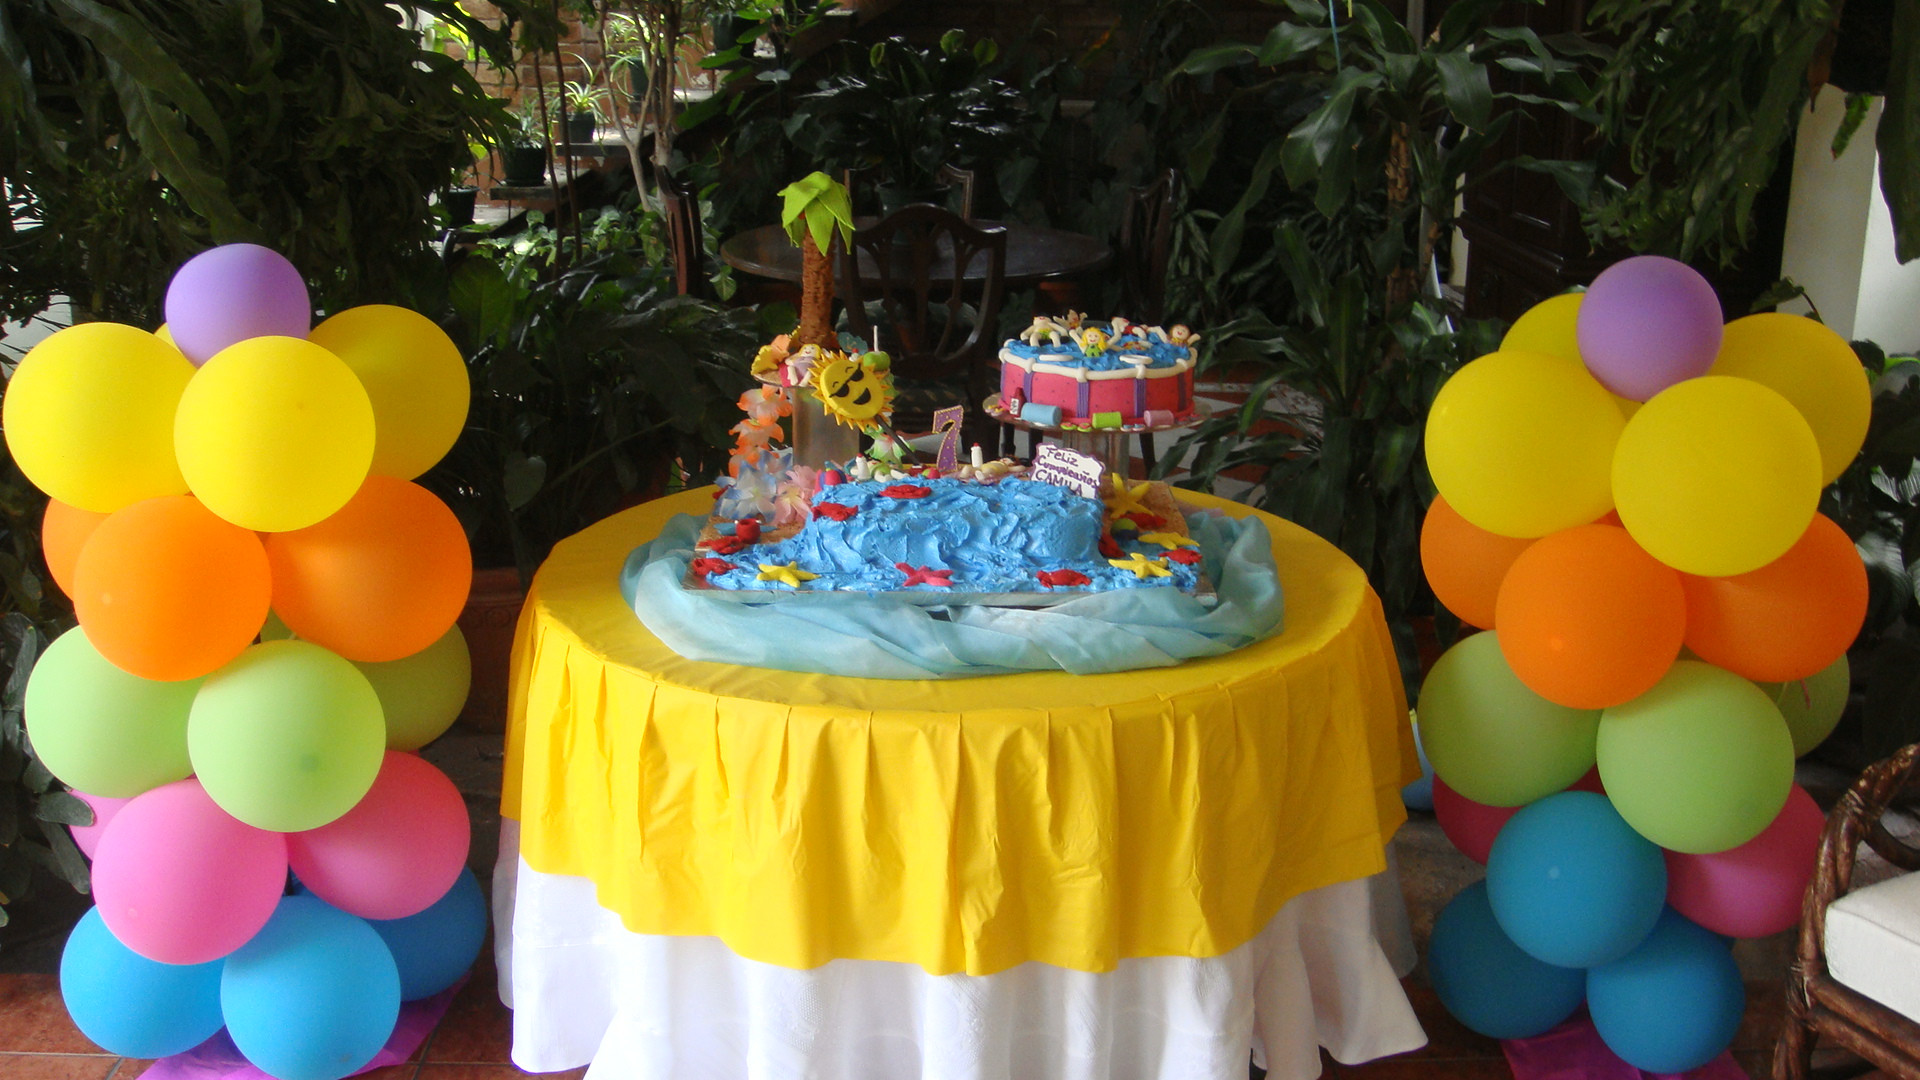 Cool Pool Party Ideas  Ideas for a Cool Sunny Pool Party